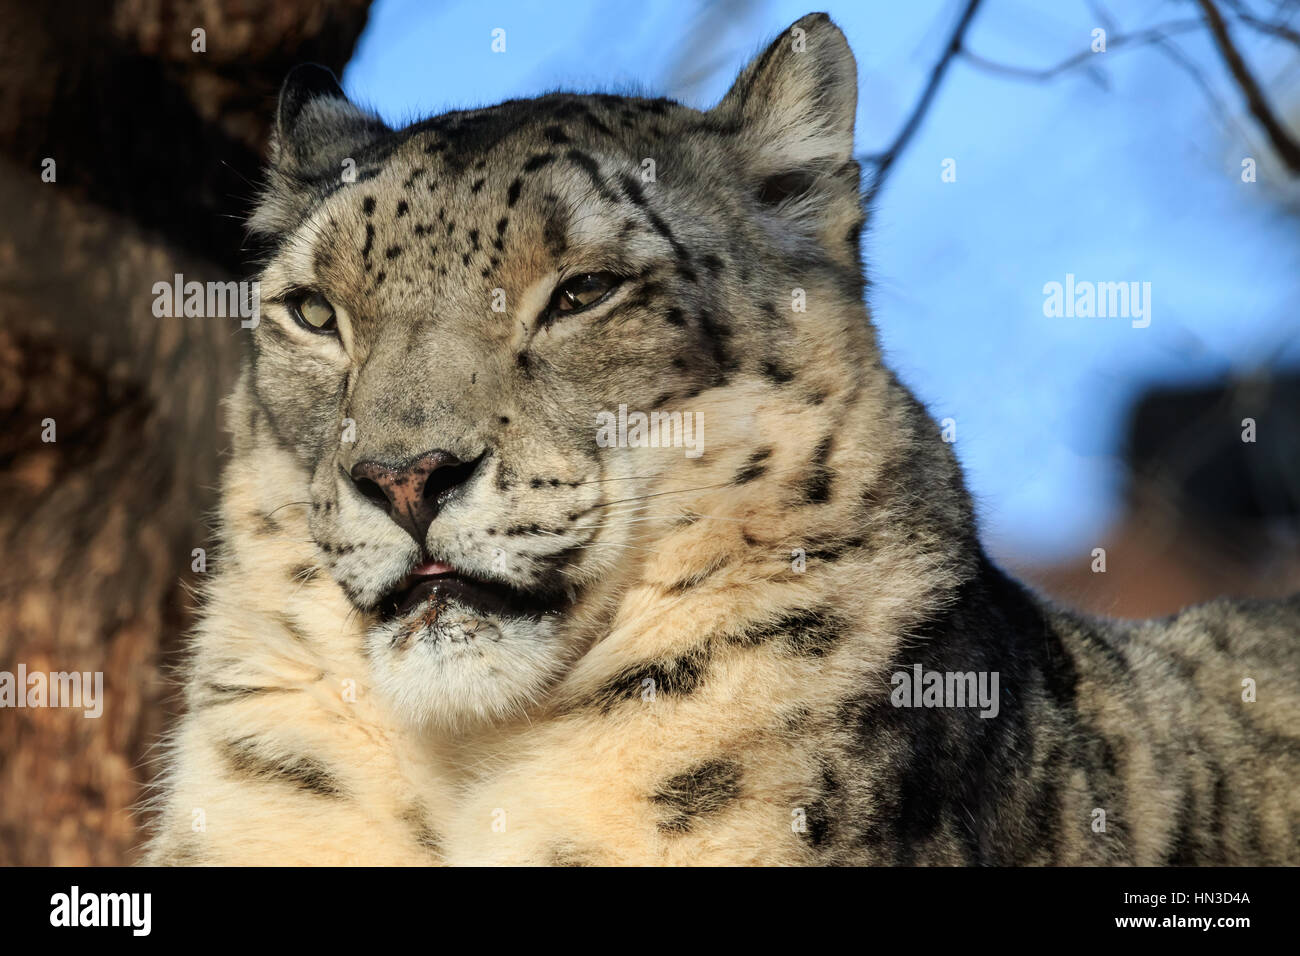 A Snow Leopard from the Oklahoma City Zoo. - Stock Image